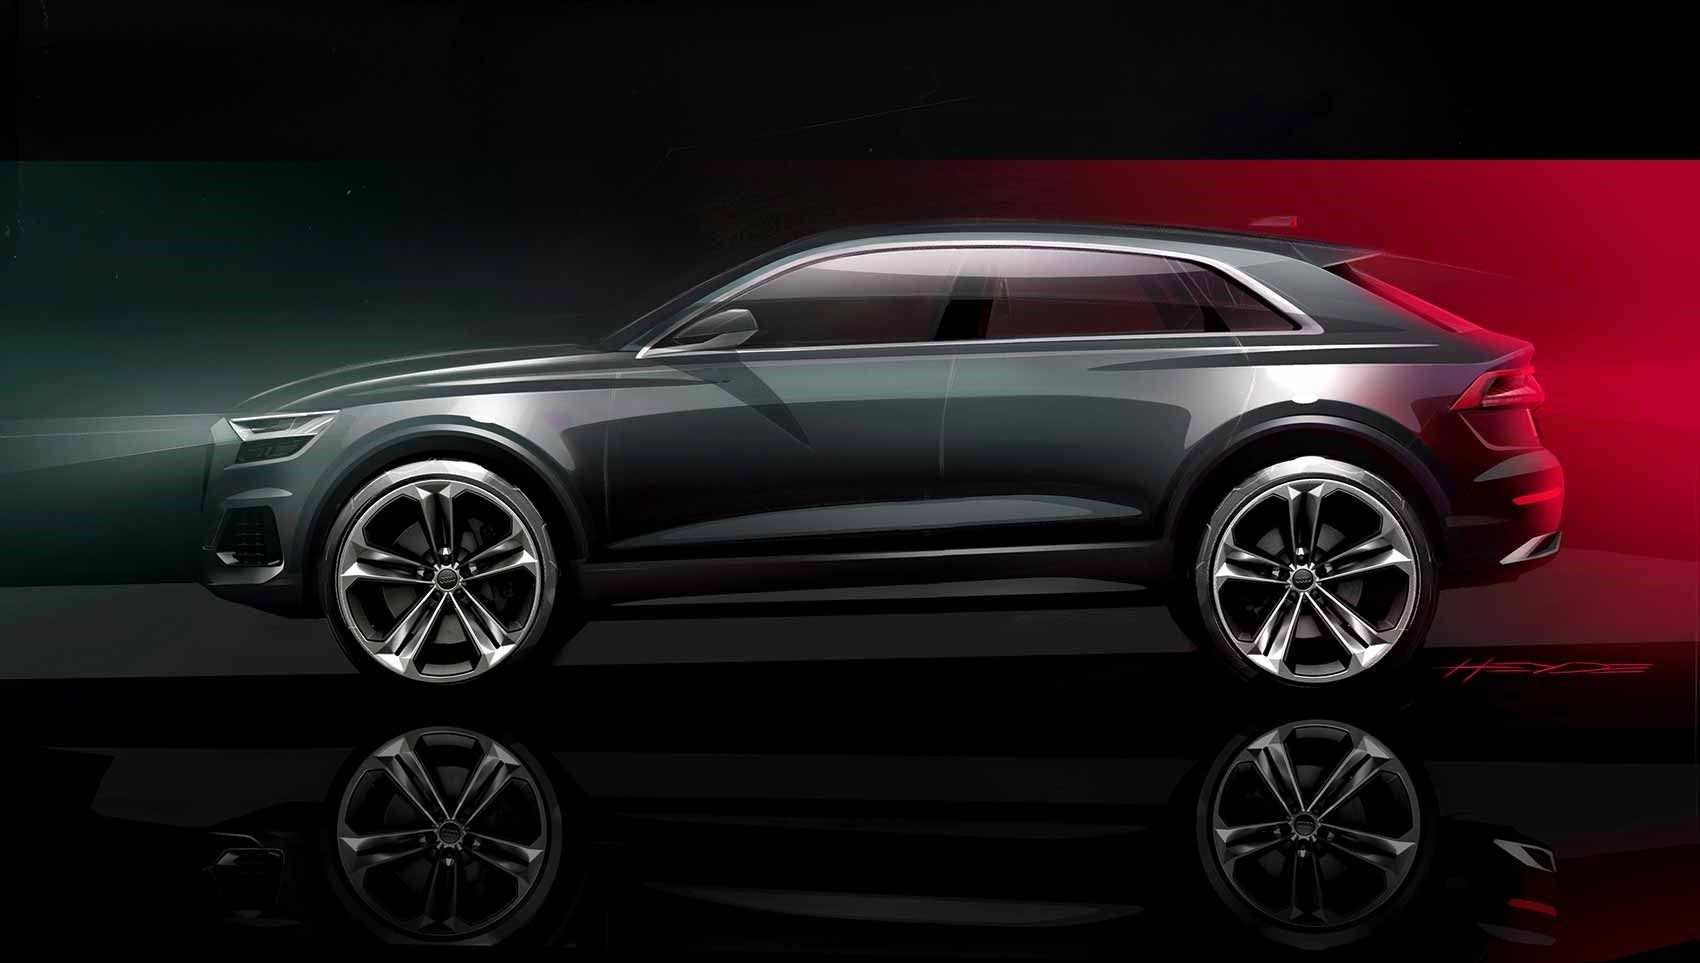 63 The 2020 Audi Q4s Style by 2020 Audi Q4s